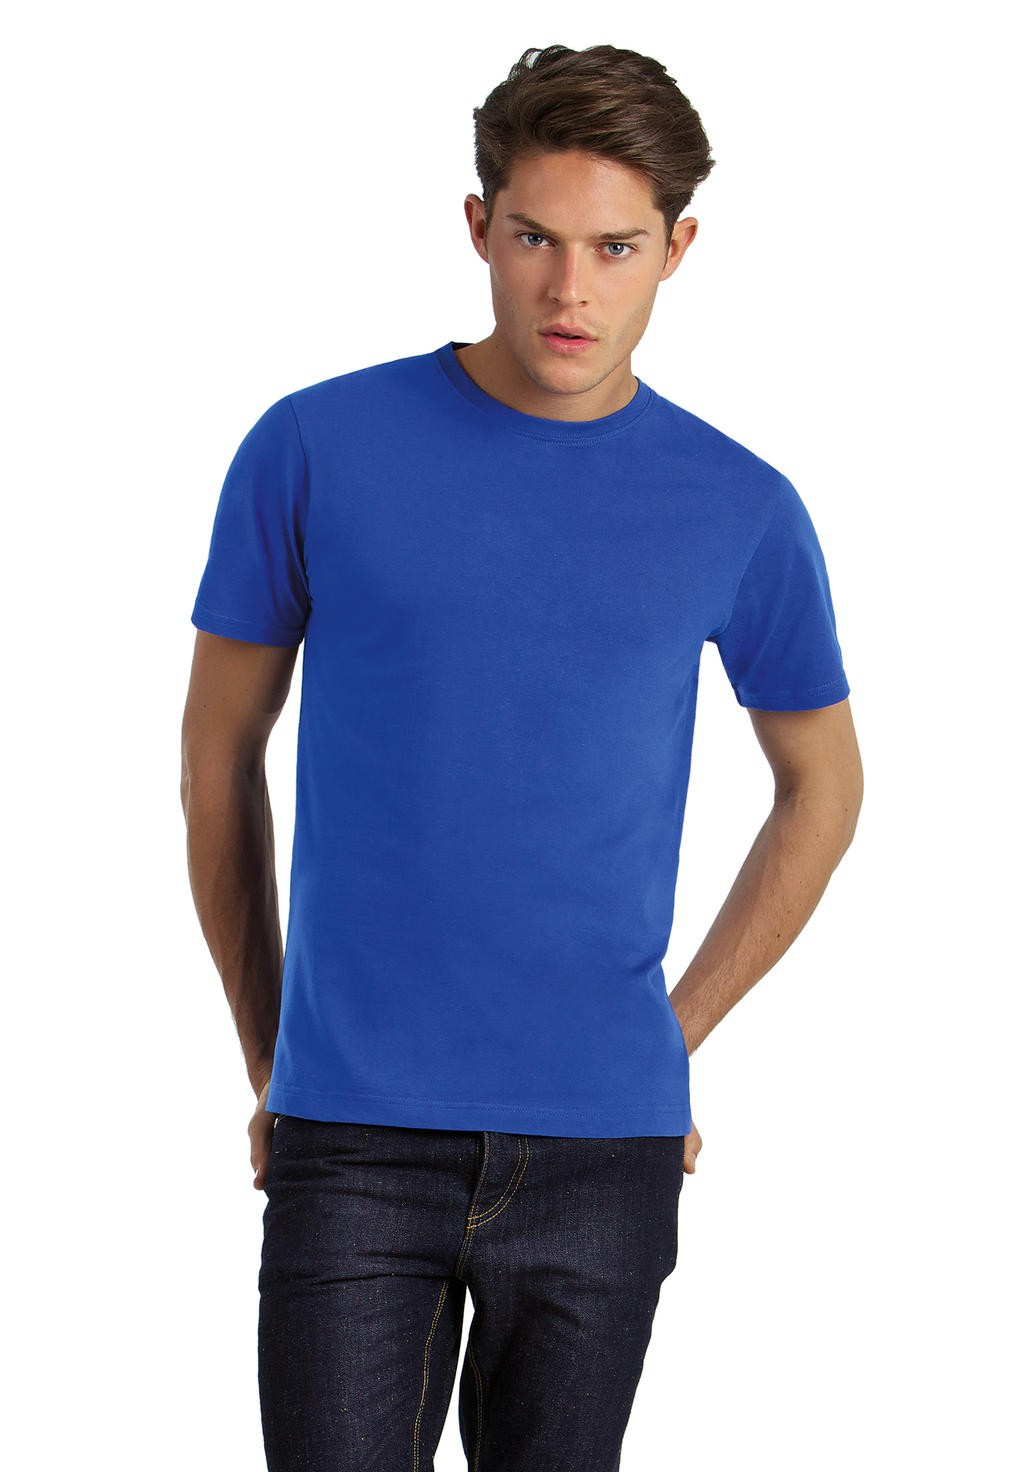 B&C: Men`s Crew Neck Exact 190 Top Men TM050